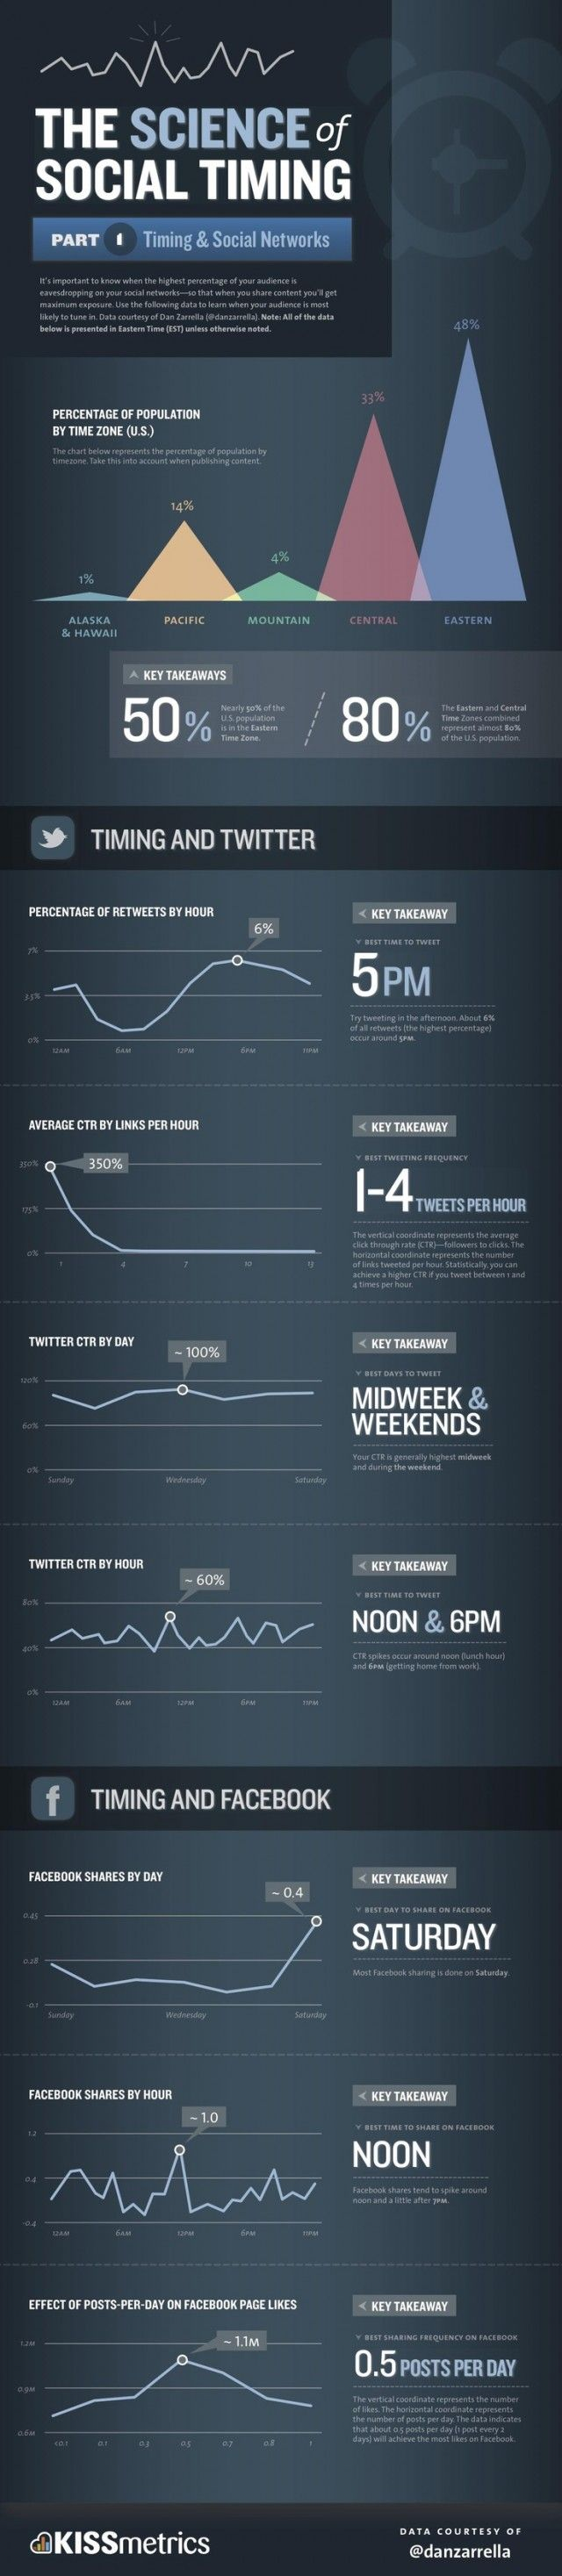 The Science of Social Timing For #Twitter and #Facebook #infographic